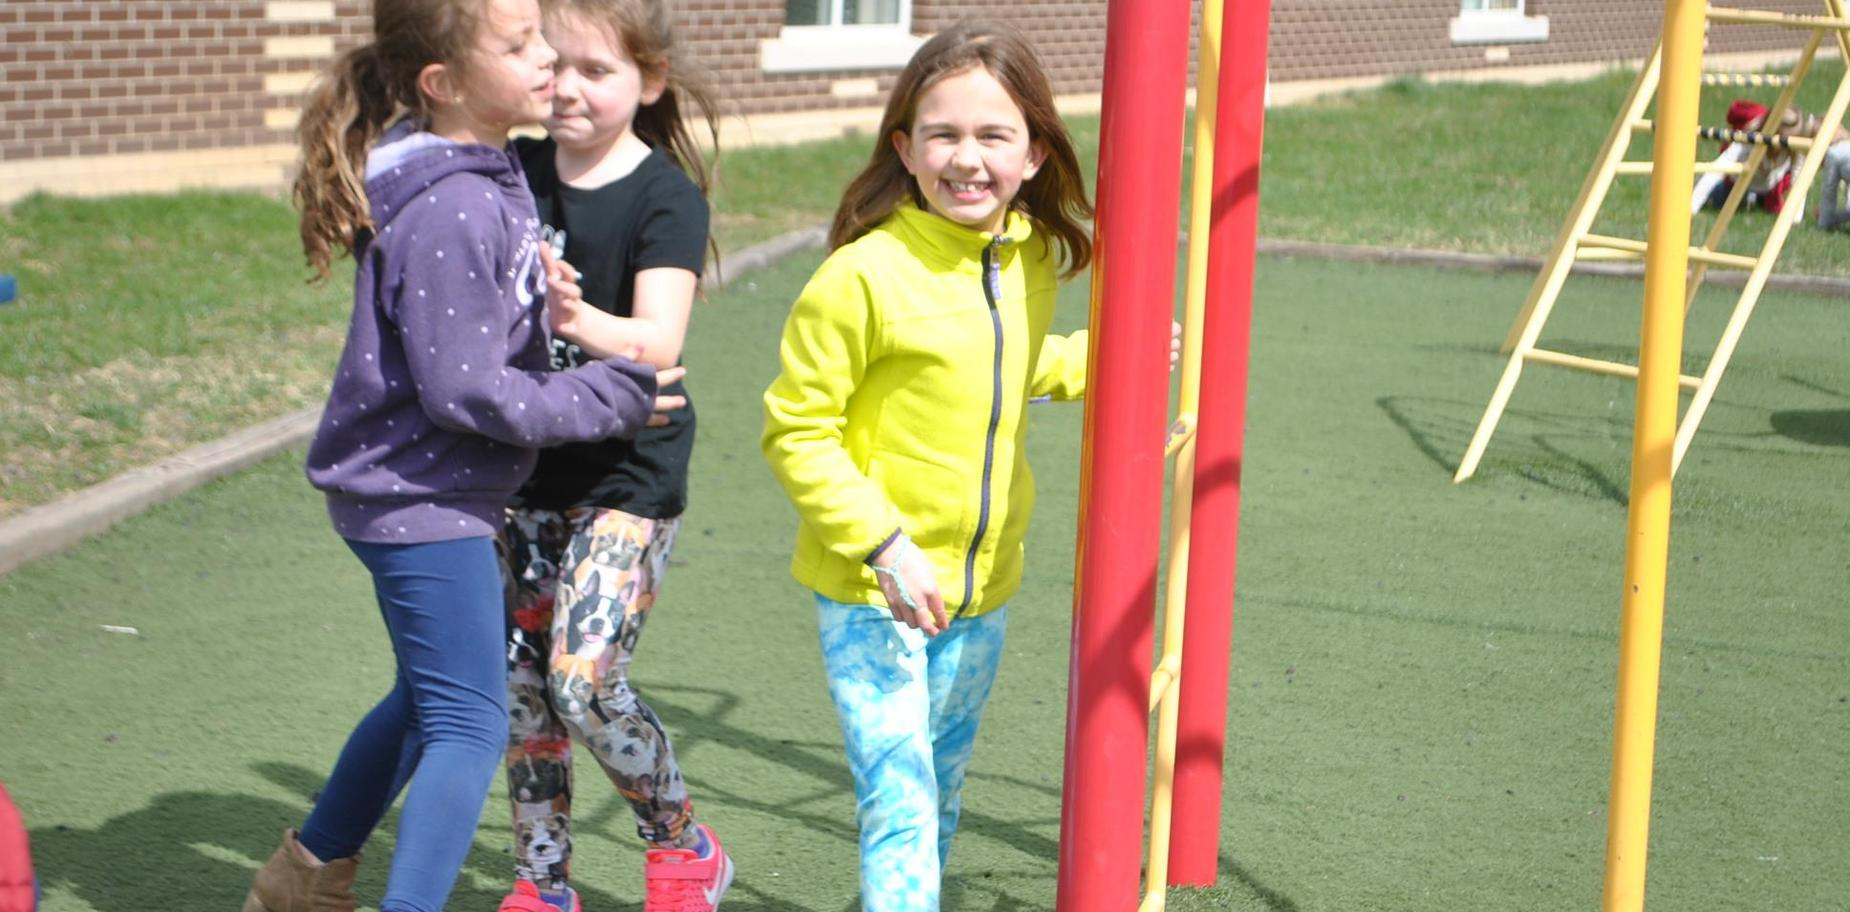 Students on play ground